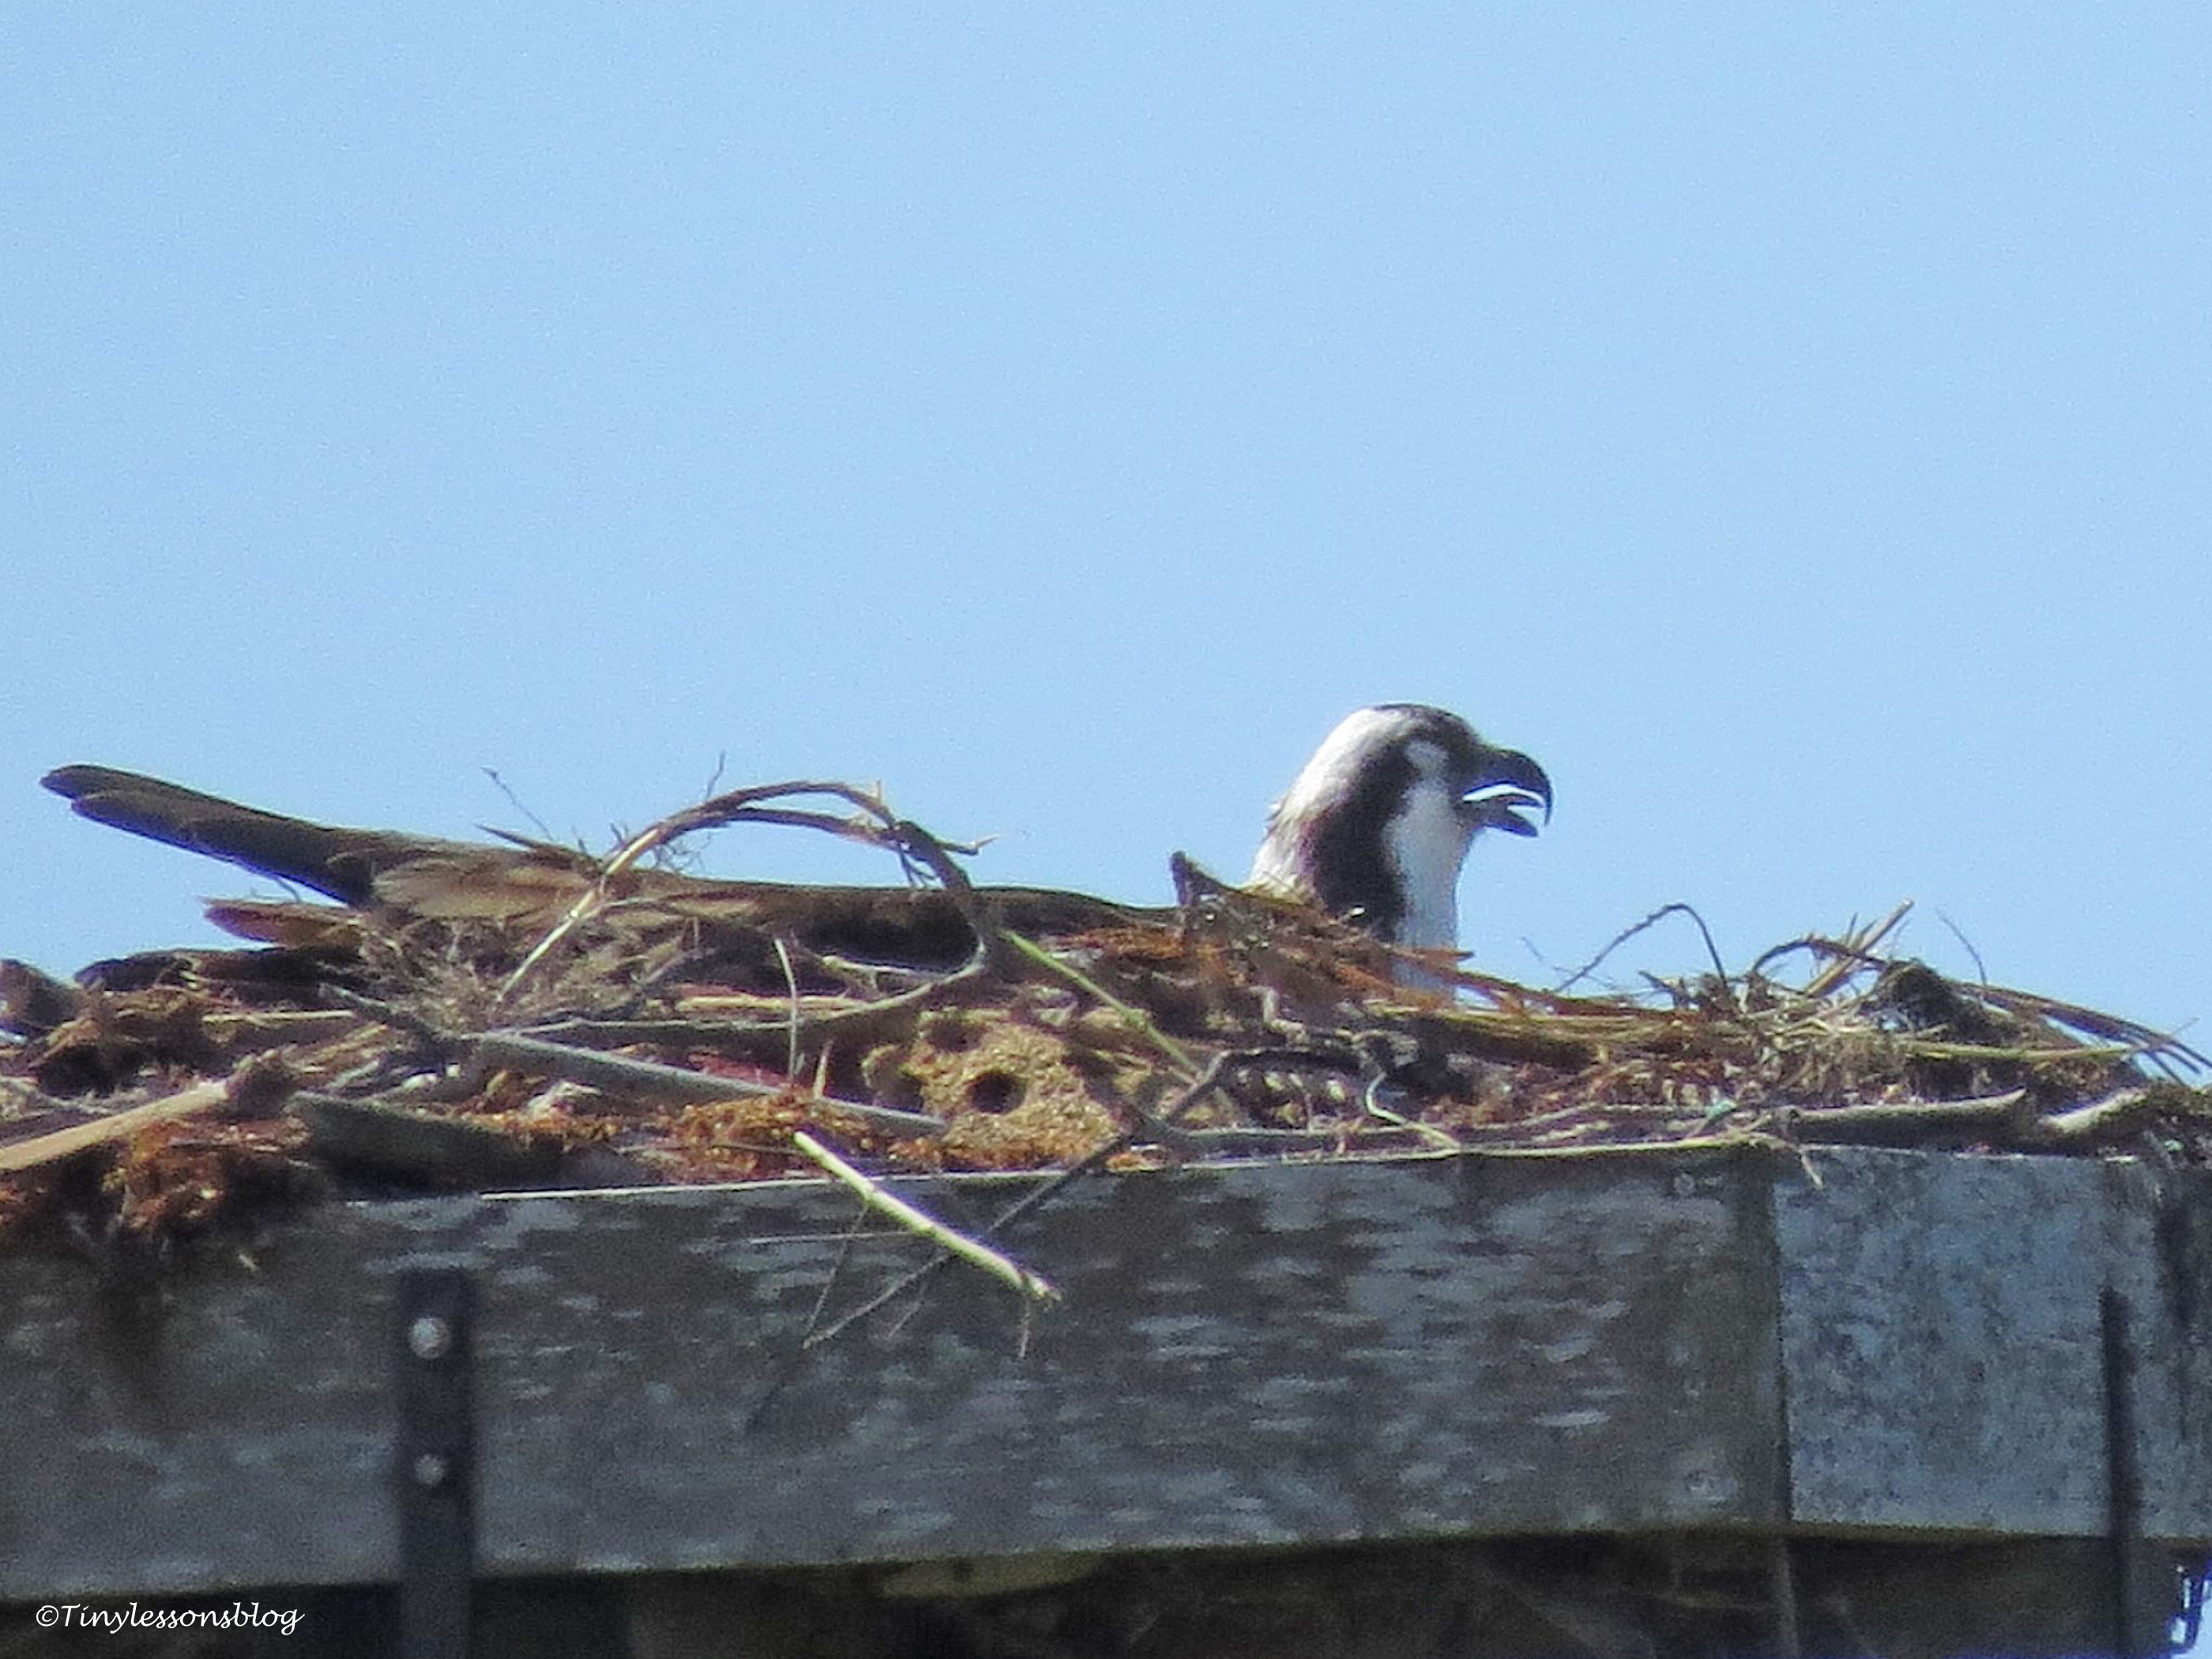 Mama Osprey sits on the egg(s) and cools herself...